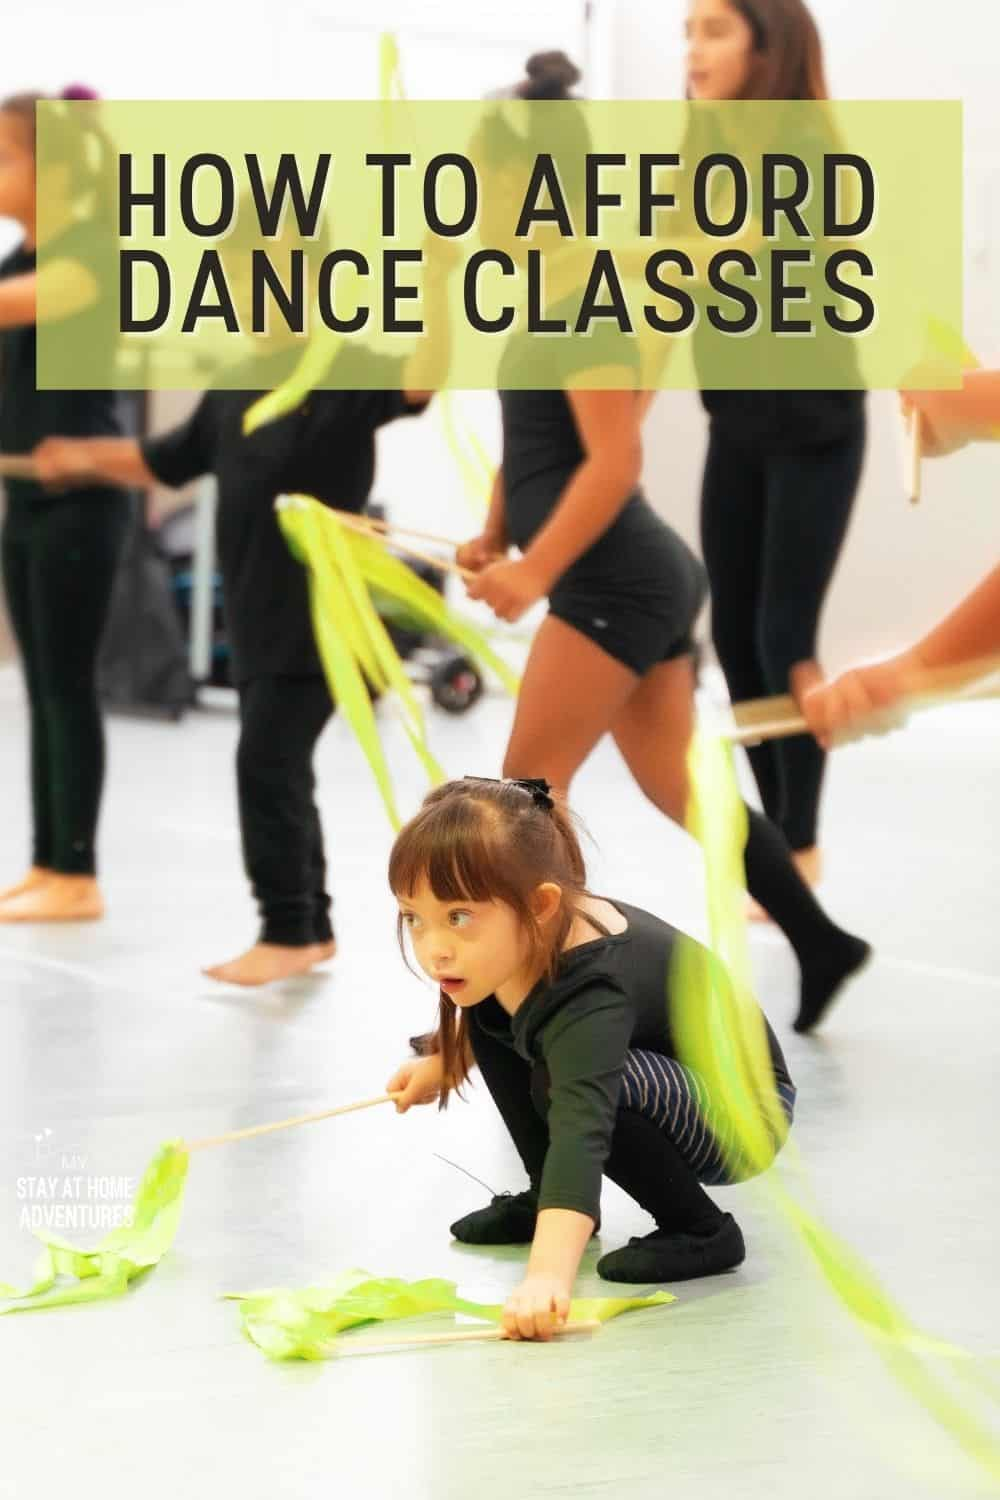 Learn how to afford dance classes with these eight budget-friendly tips. From finding aid to shopping around there are many ways to dance on a budget. #budget #dance #howto #afford #moneysavingtips via @mystayathome